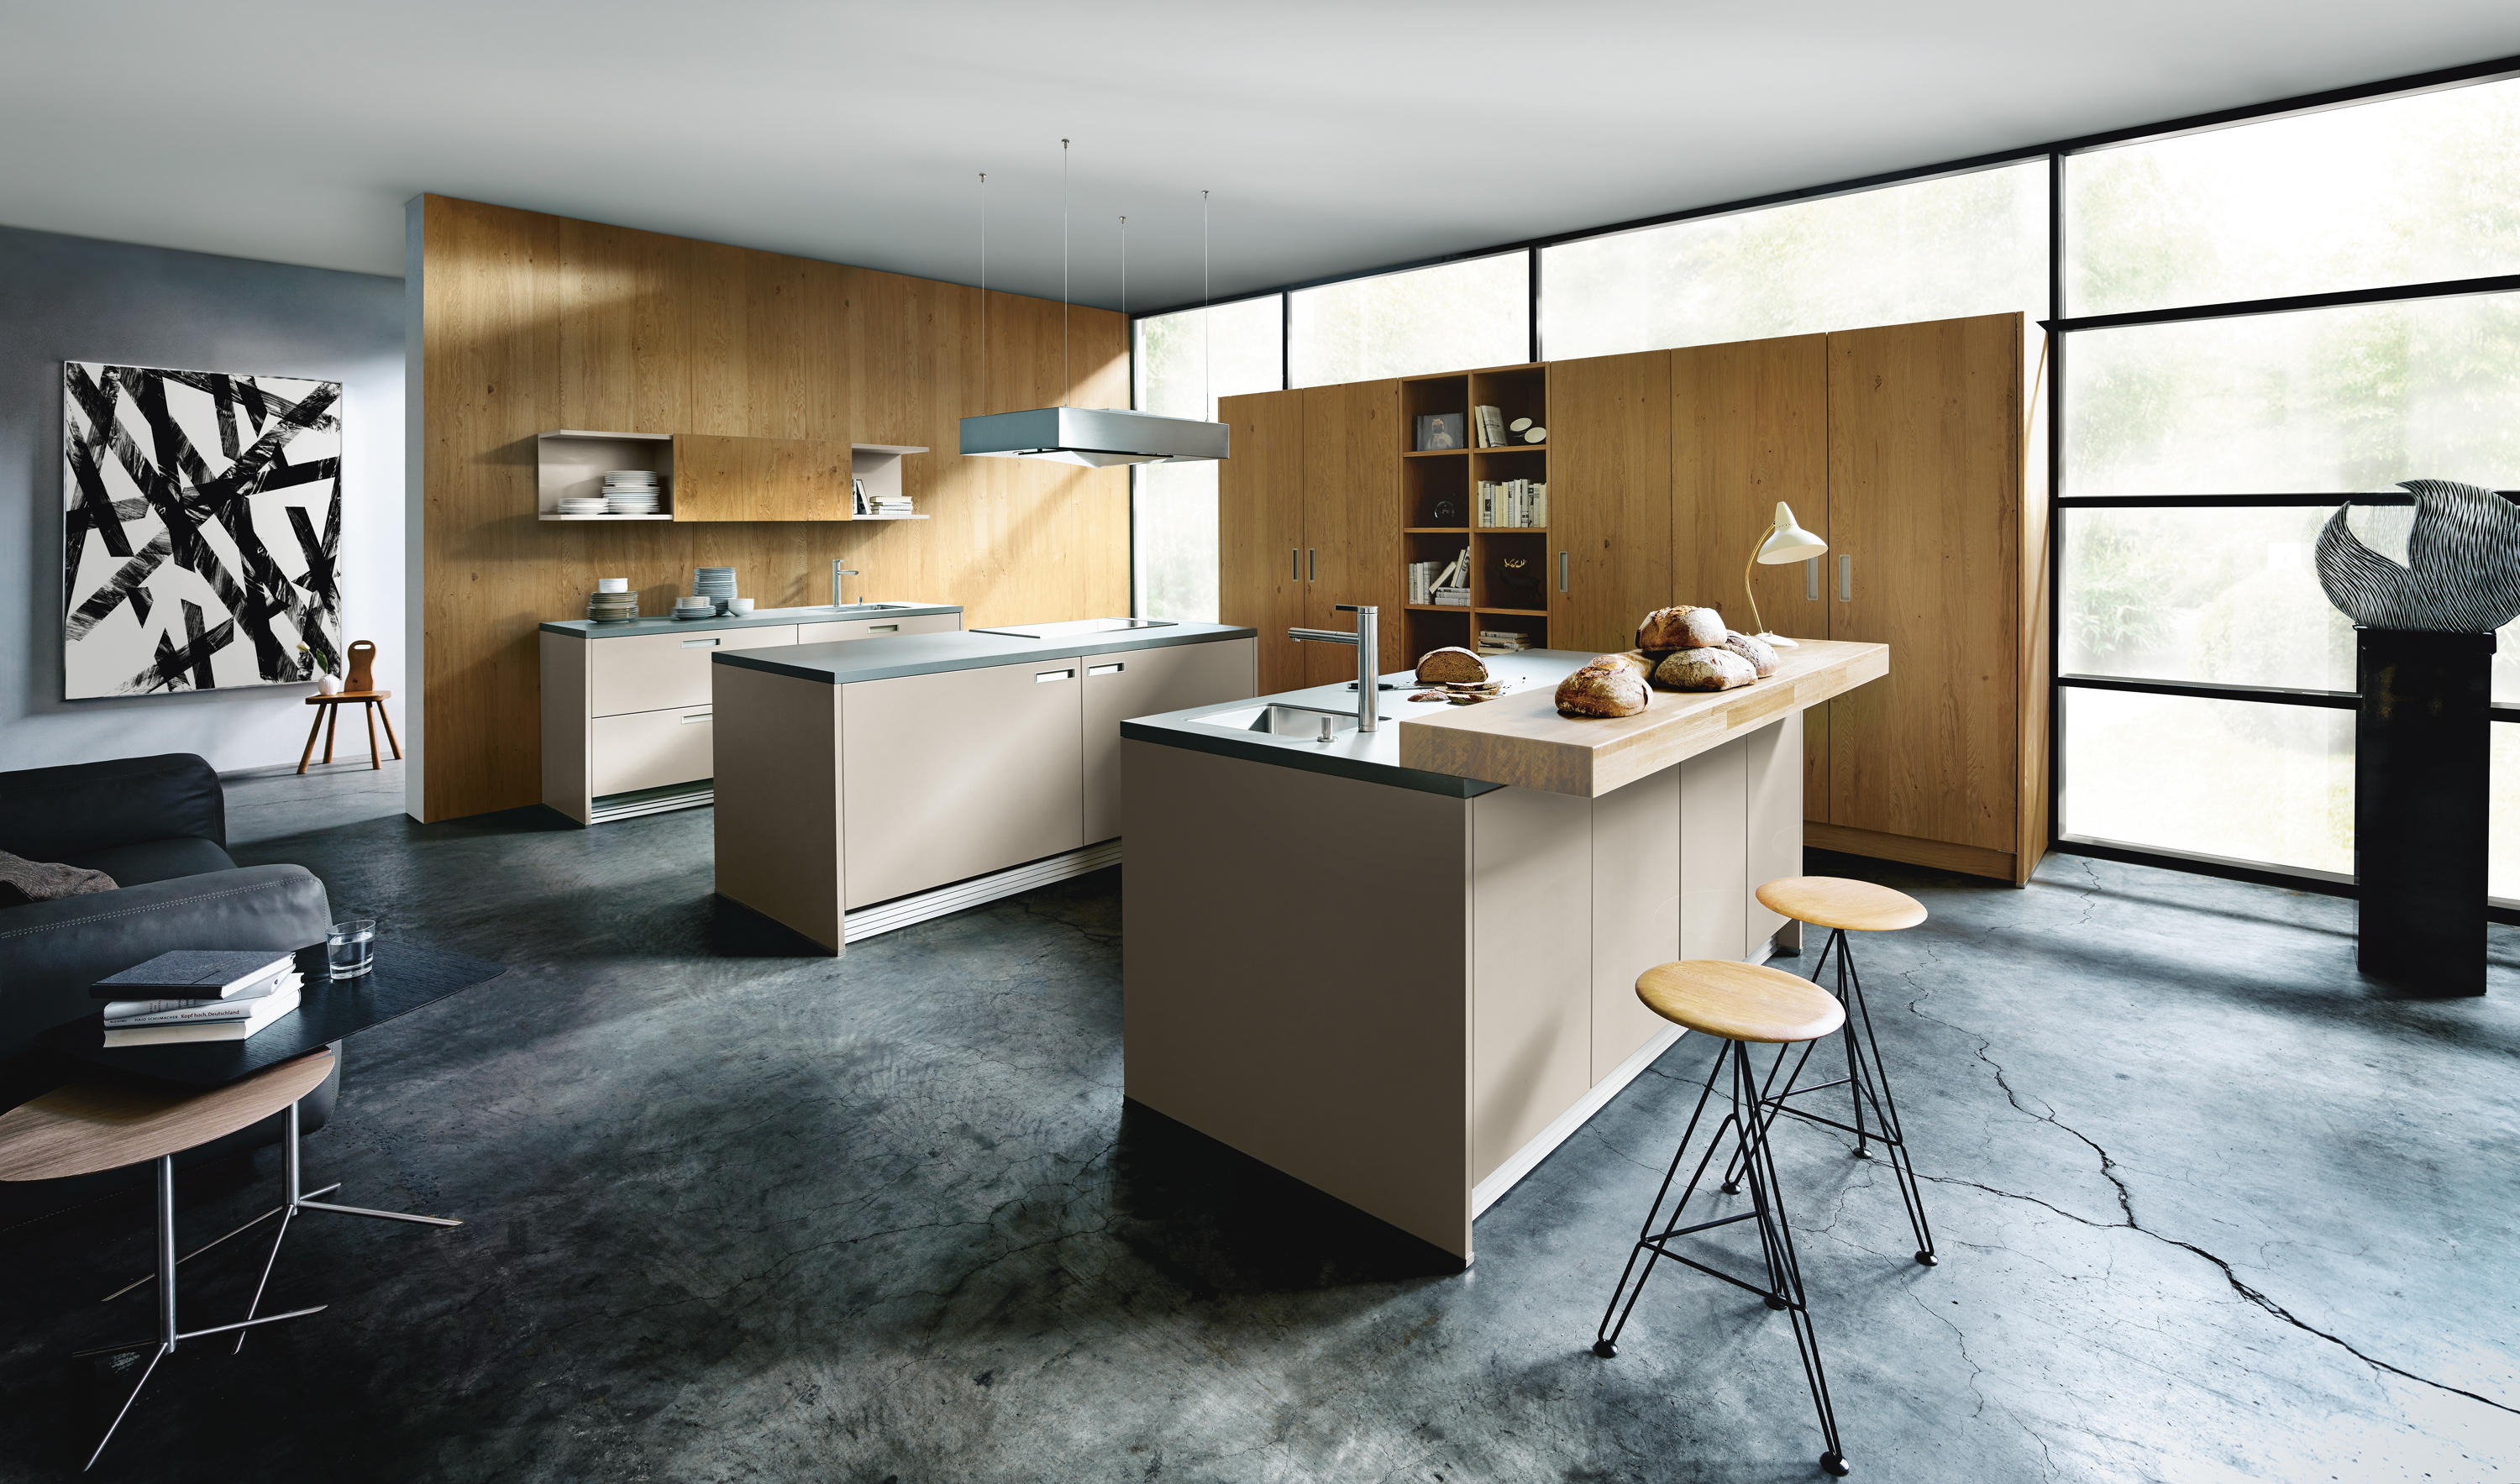 NX 510 Sand Grey Matt Velvet By Next125 | Fitted Kitchens ...